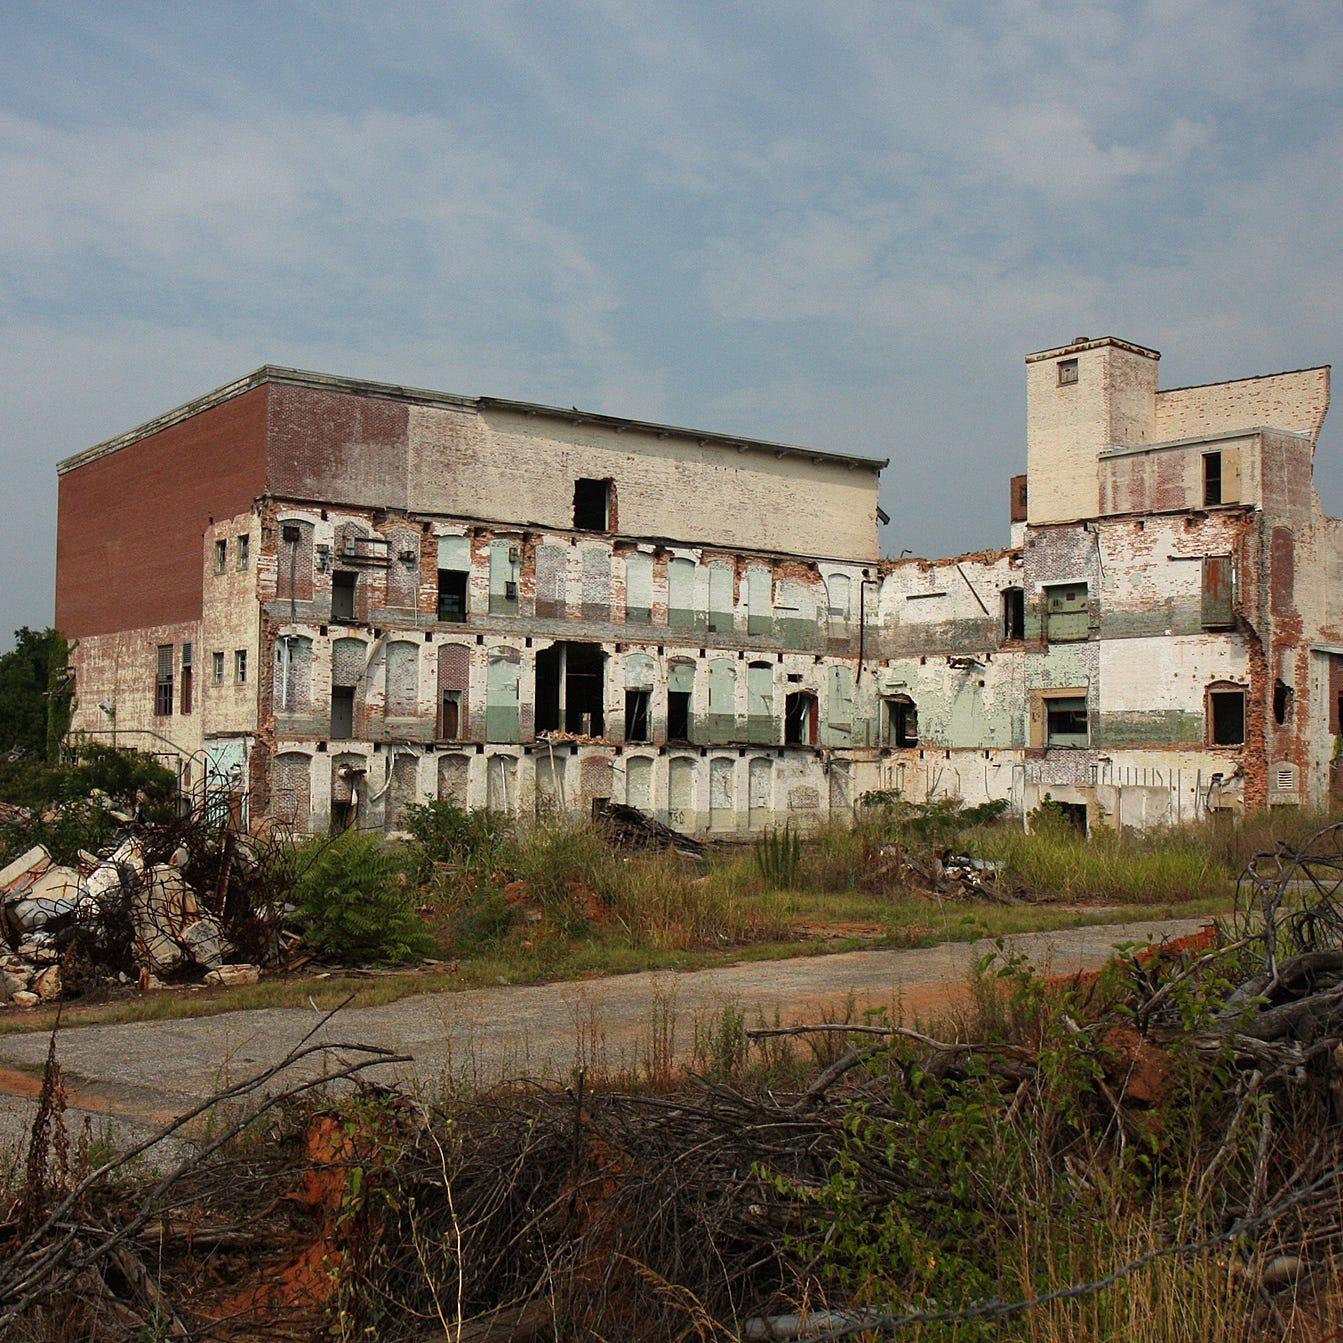 Greer's Victor Mill redevelopment could boost neighborhood, city revitalization efforts